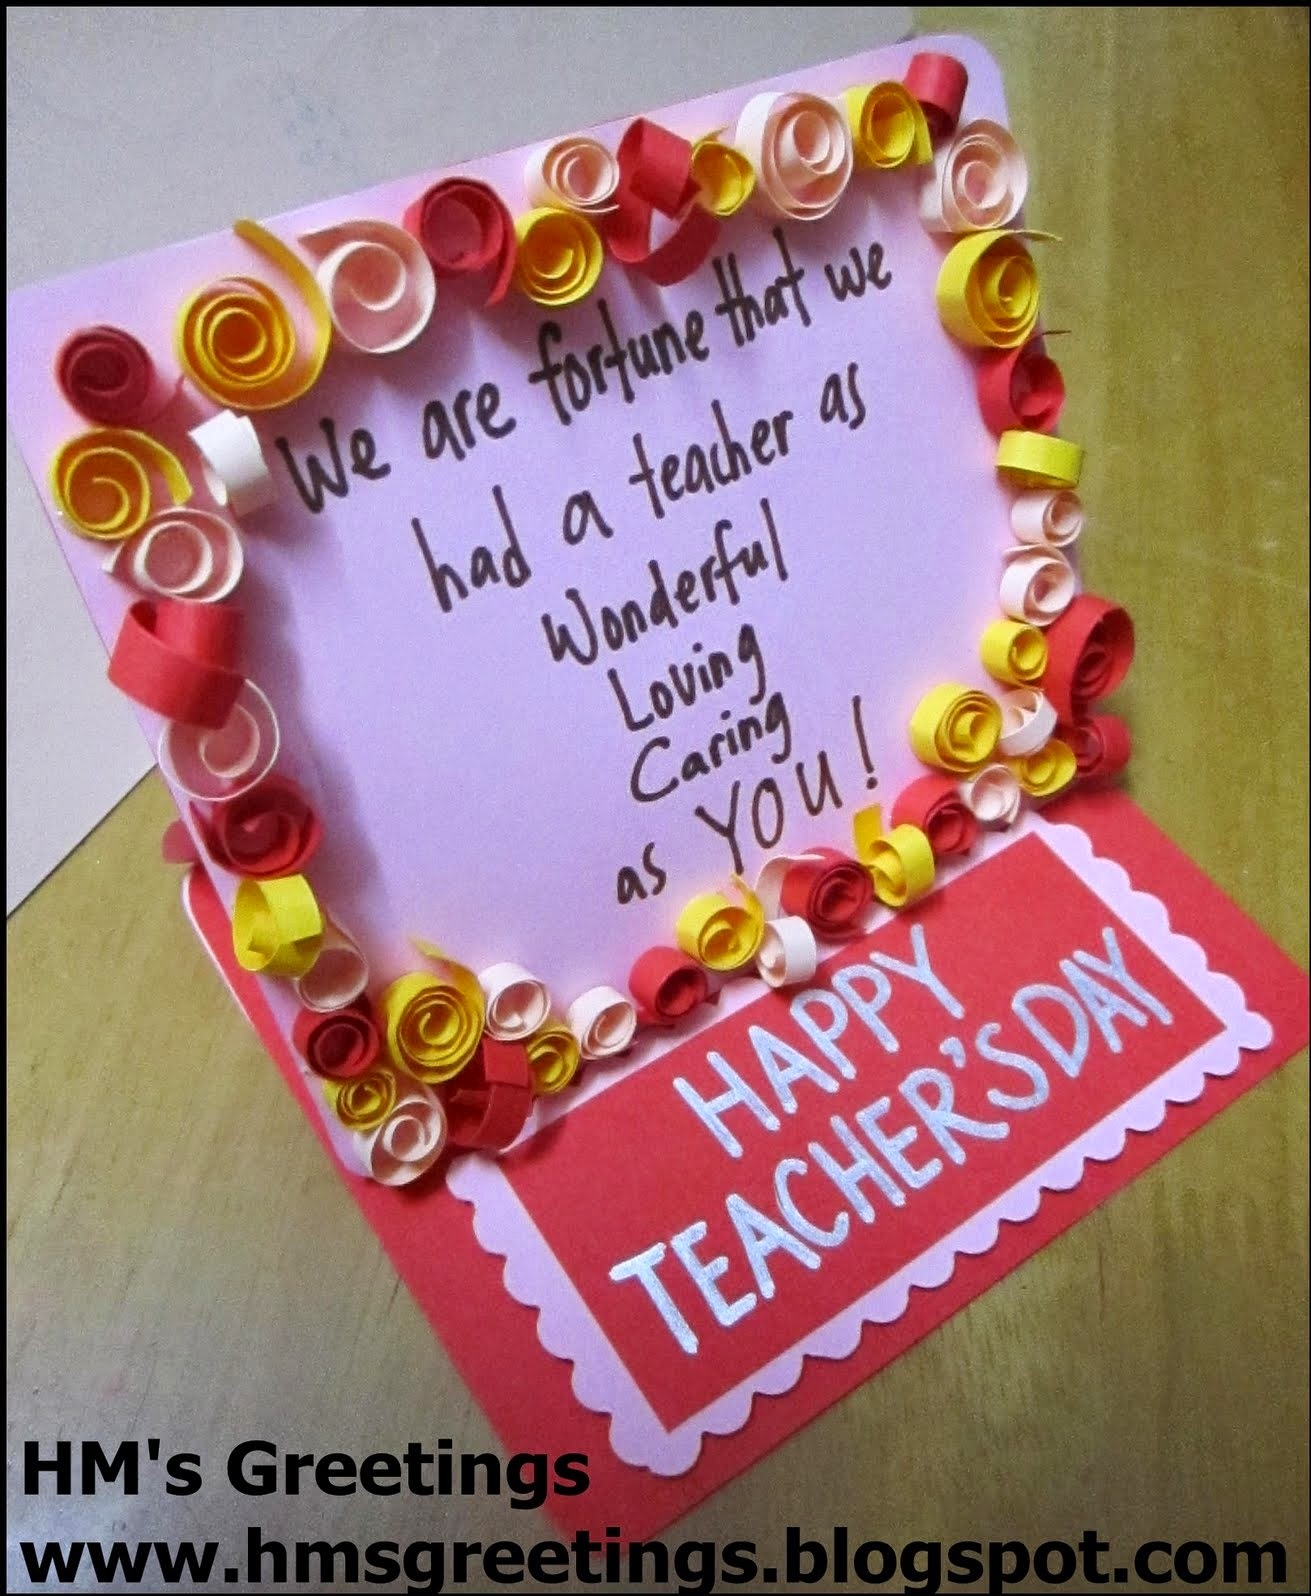 Nice messages for teachers cards carlazosfo matter for teachers day greeting card image collections greetings m4hsunfo